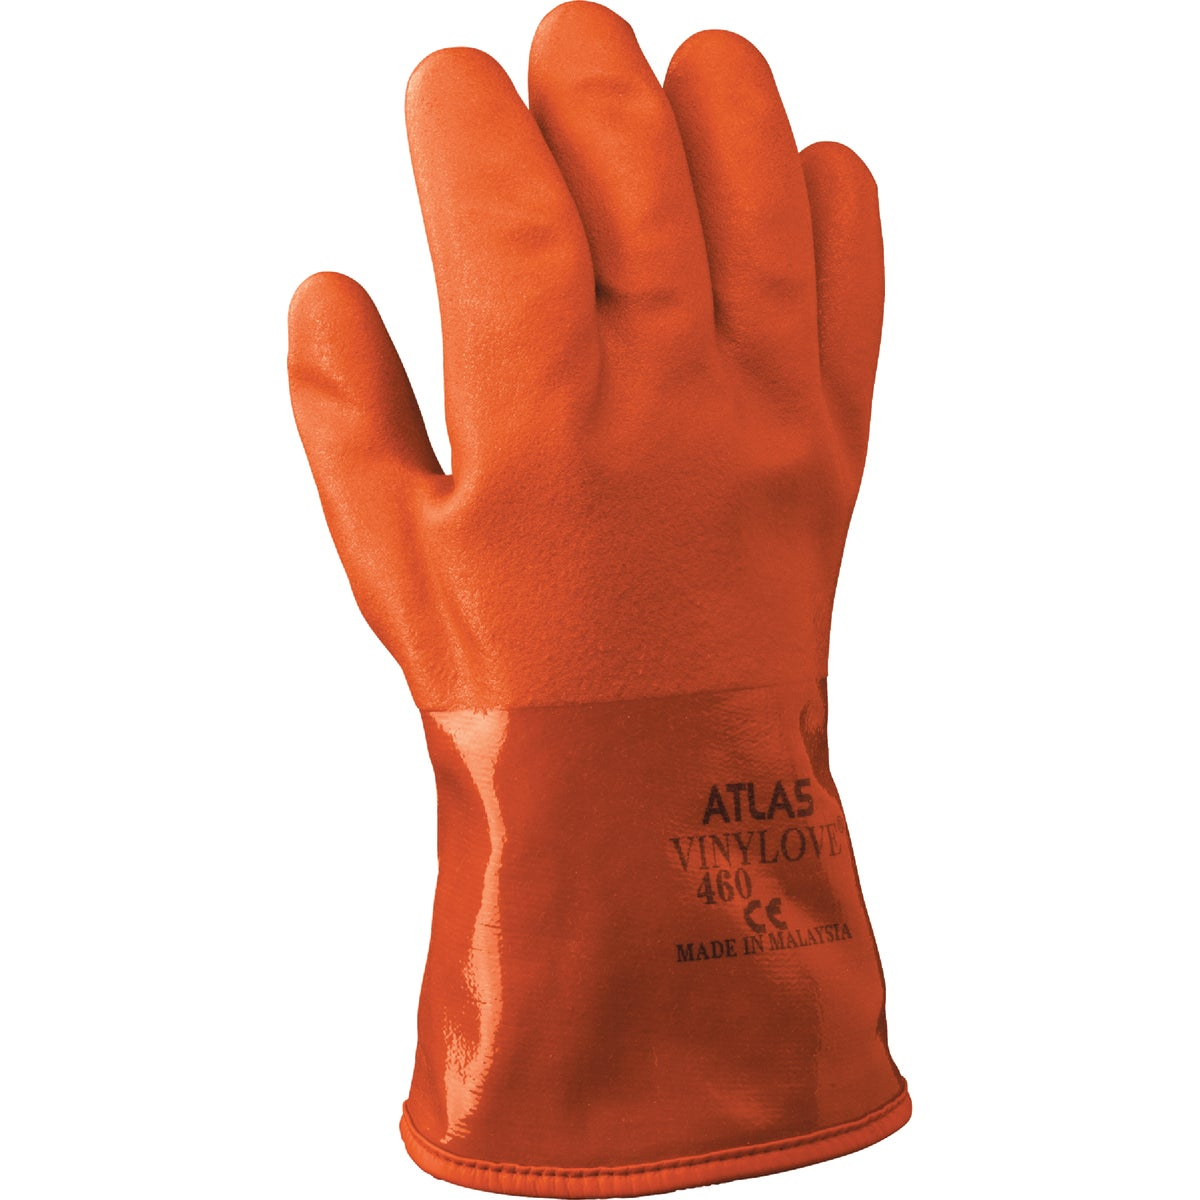 LRG SNOW BLOWER GLOVE - 460L-09.RT by Showa Best Glove